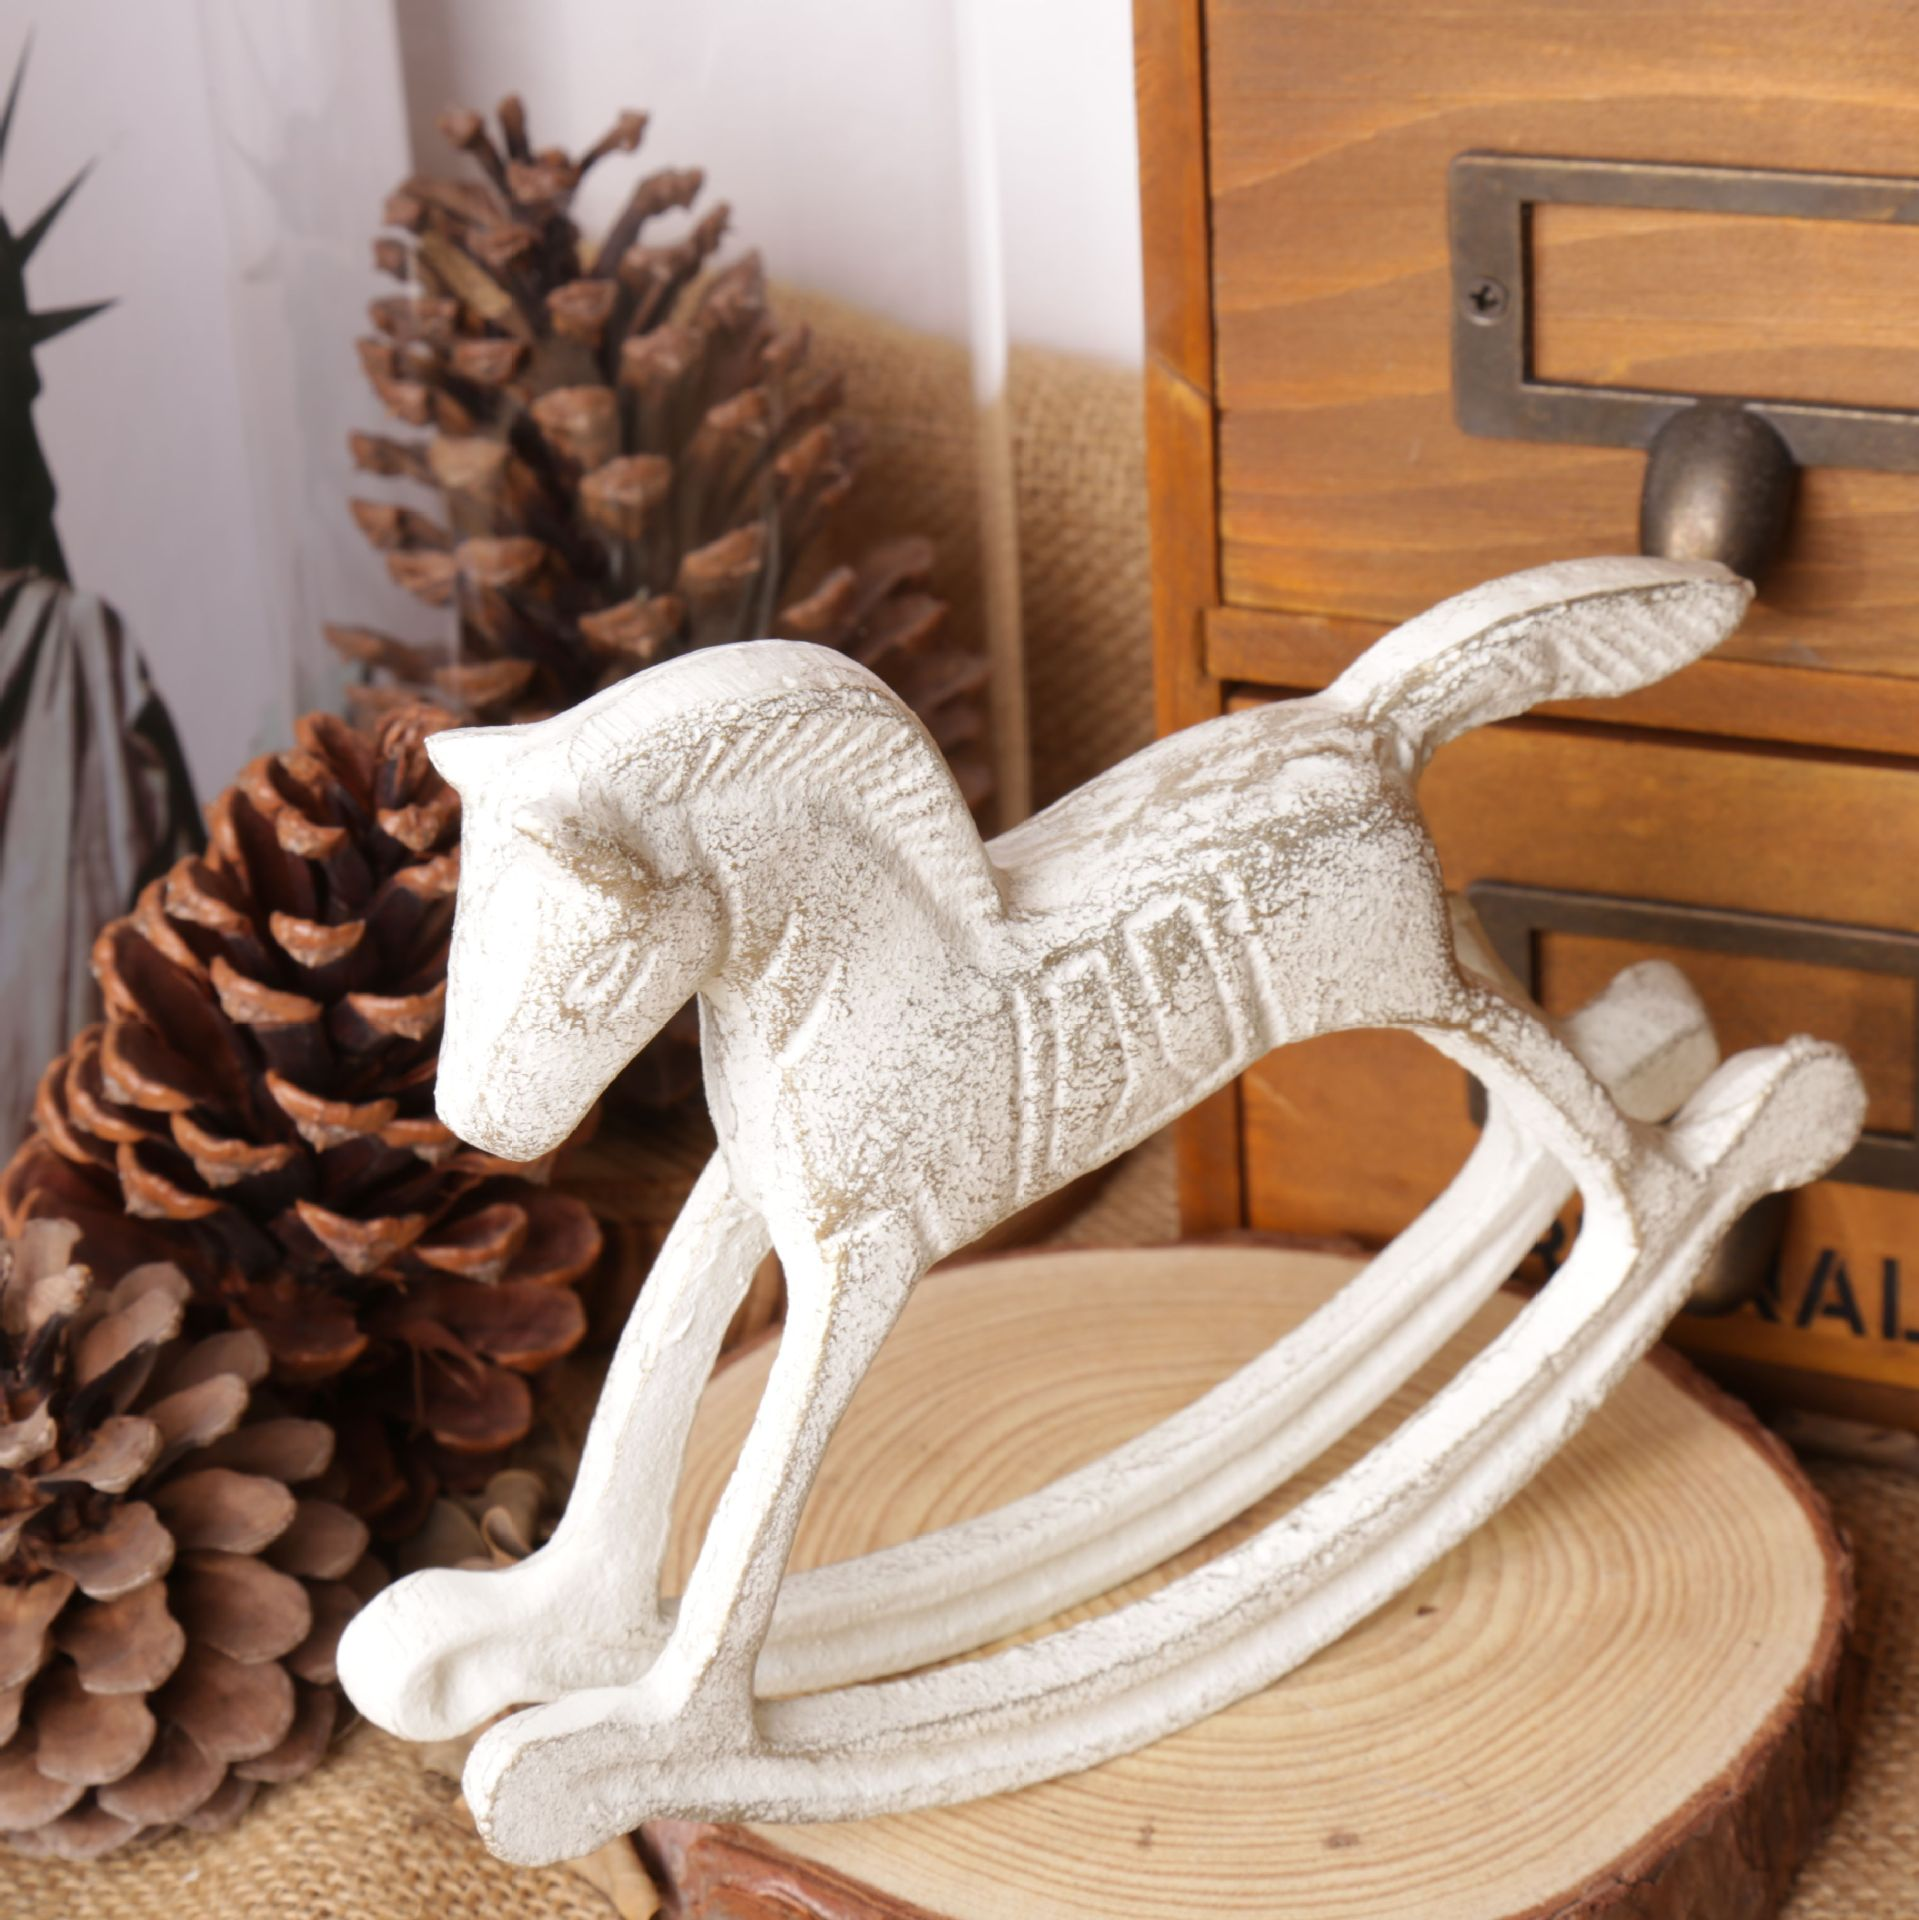 Home Decor Articles kitchen hardware awesome designs in knobs and pulls Aliexpresscom Buy Unique Gift Vintage Cast Iron Furnishing Articles Rocking Horse Vintage Home Decor Vintage Restaurant Decor 1653413cm From Reliable